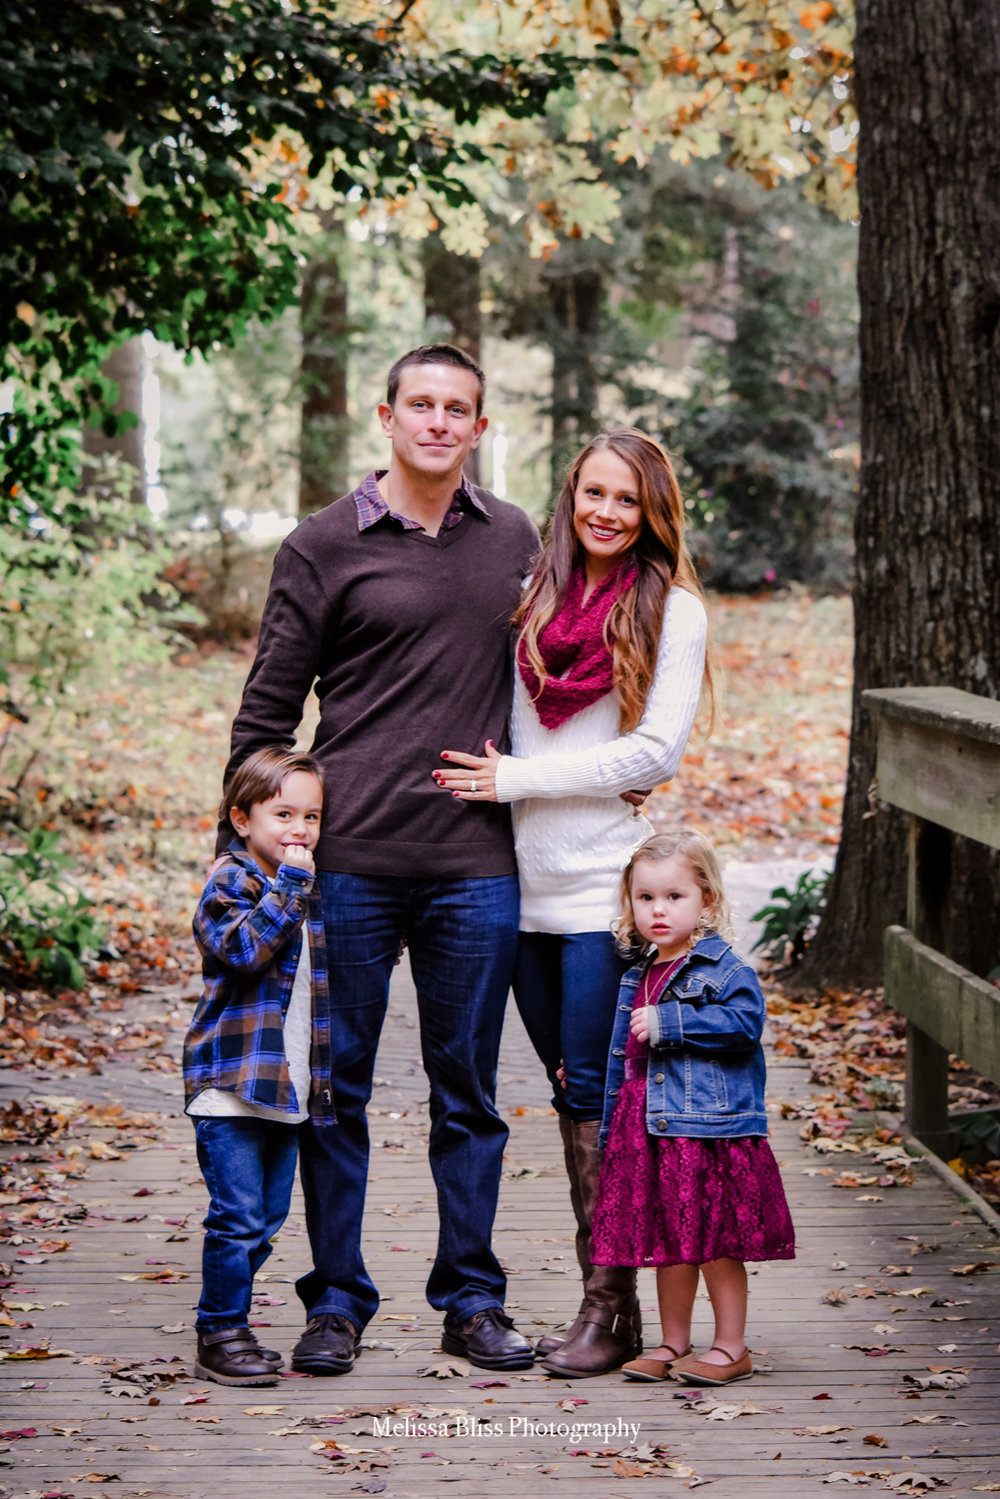 norfolk-family-photos-holiday-portraits-by-melissa-bliss-photography-virginia-beach-lifestyle-photographer.jpg